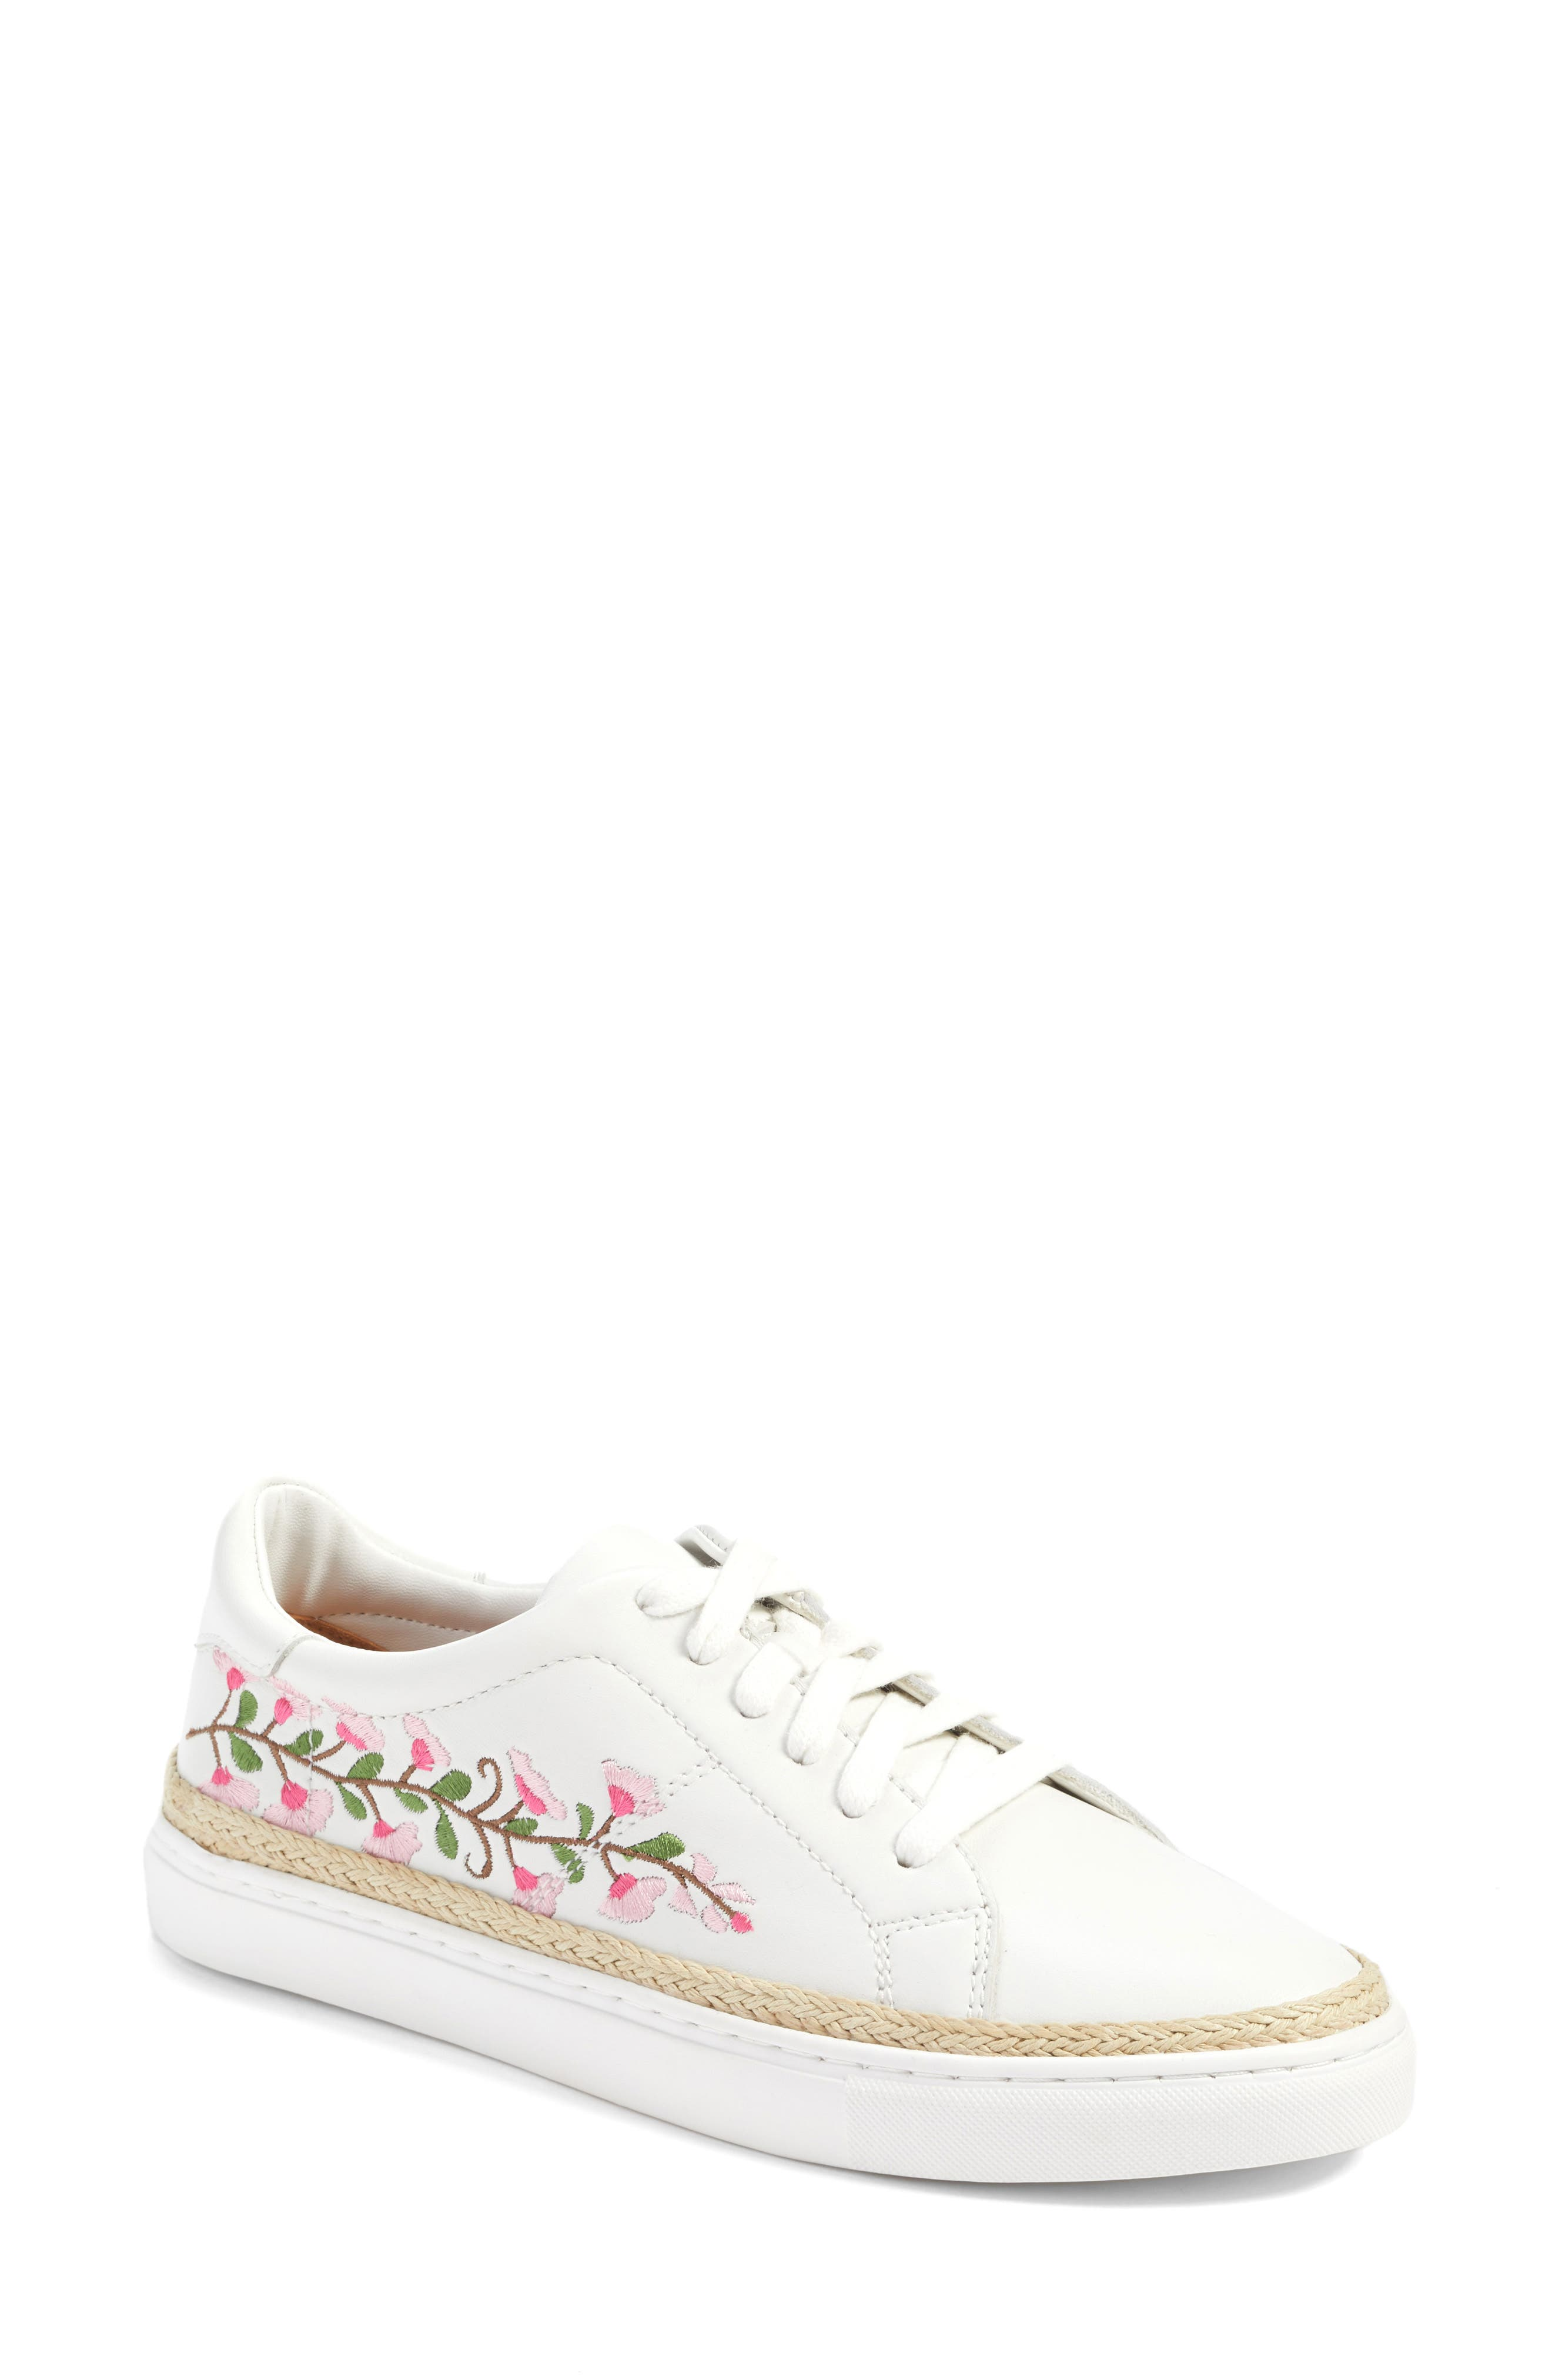 Perry Lea Embroidered Sneaker,                         Main,                         color, White Leather